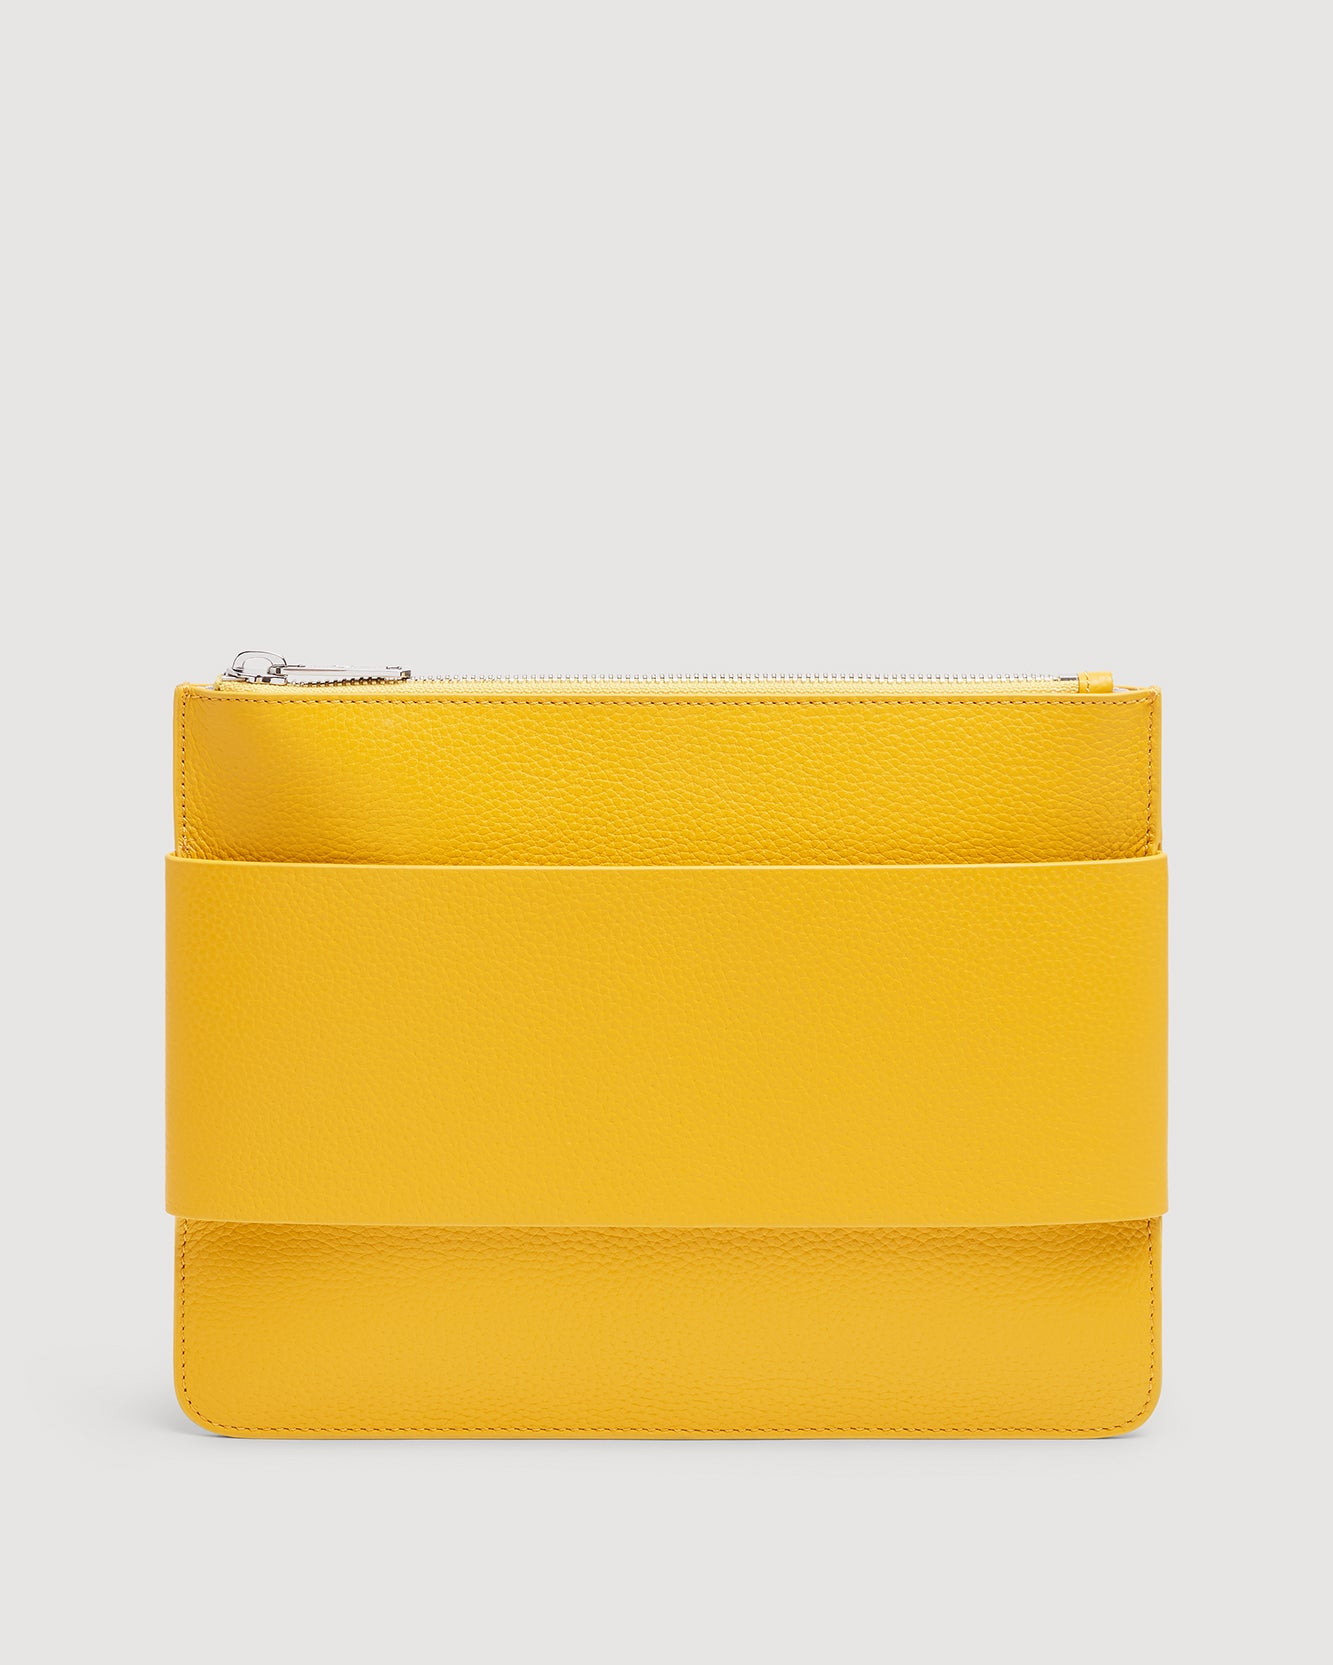 Image of Mankind Clutch in Yellow